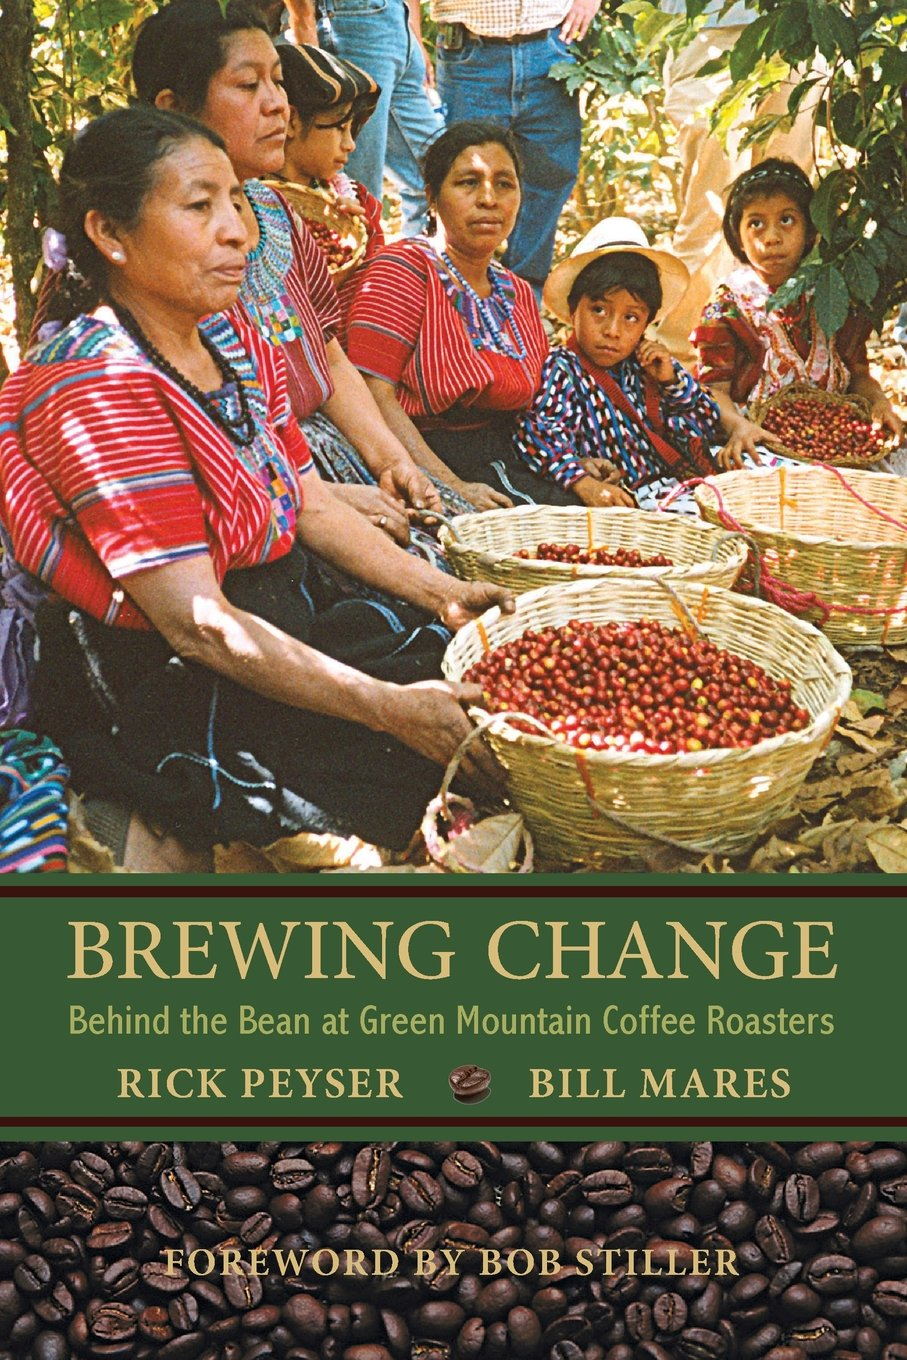 Brewing Change: Behind the Bean at Green Mountain Coffee Roasters pdf